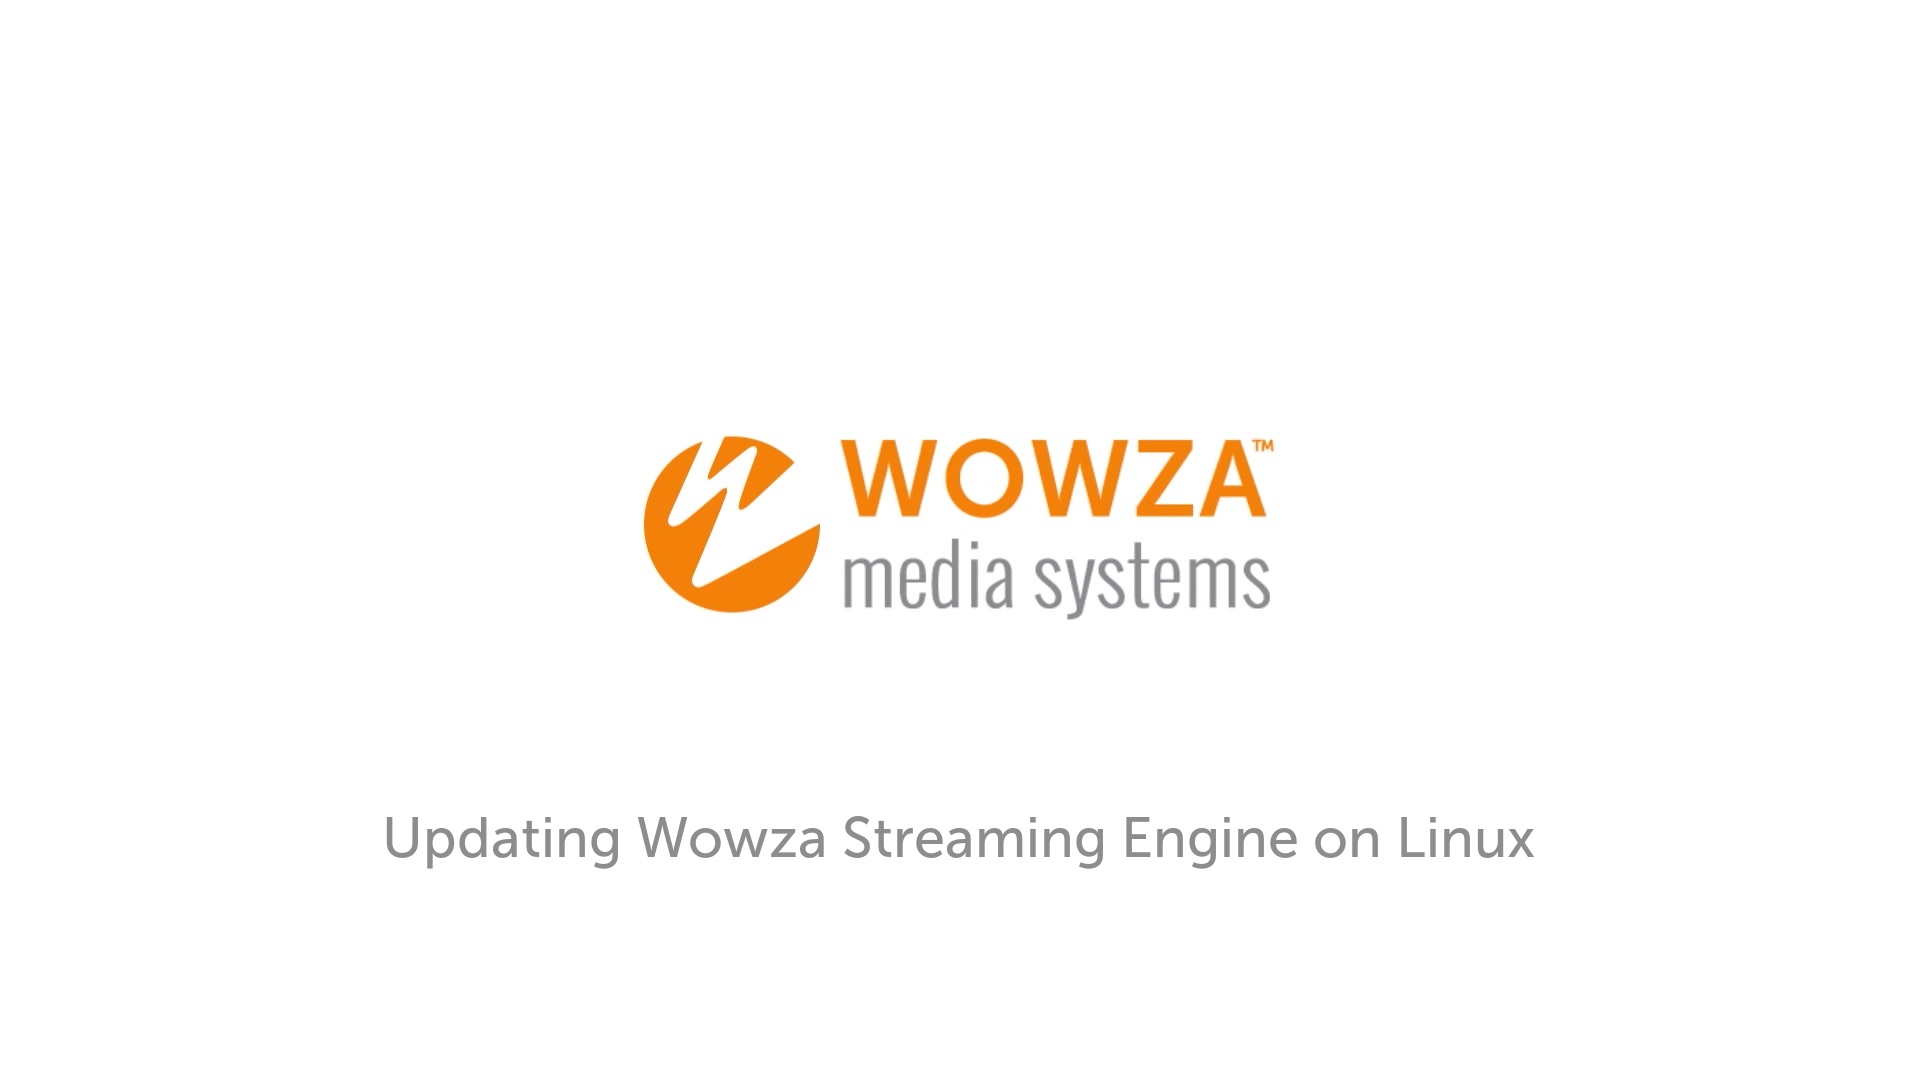 Update Wowza Streaming Engine